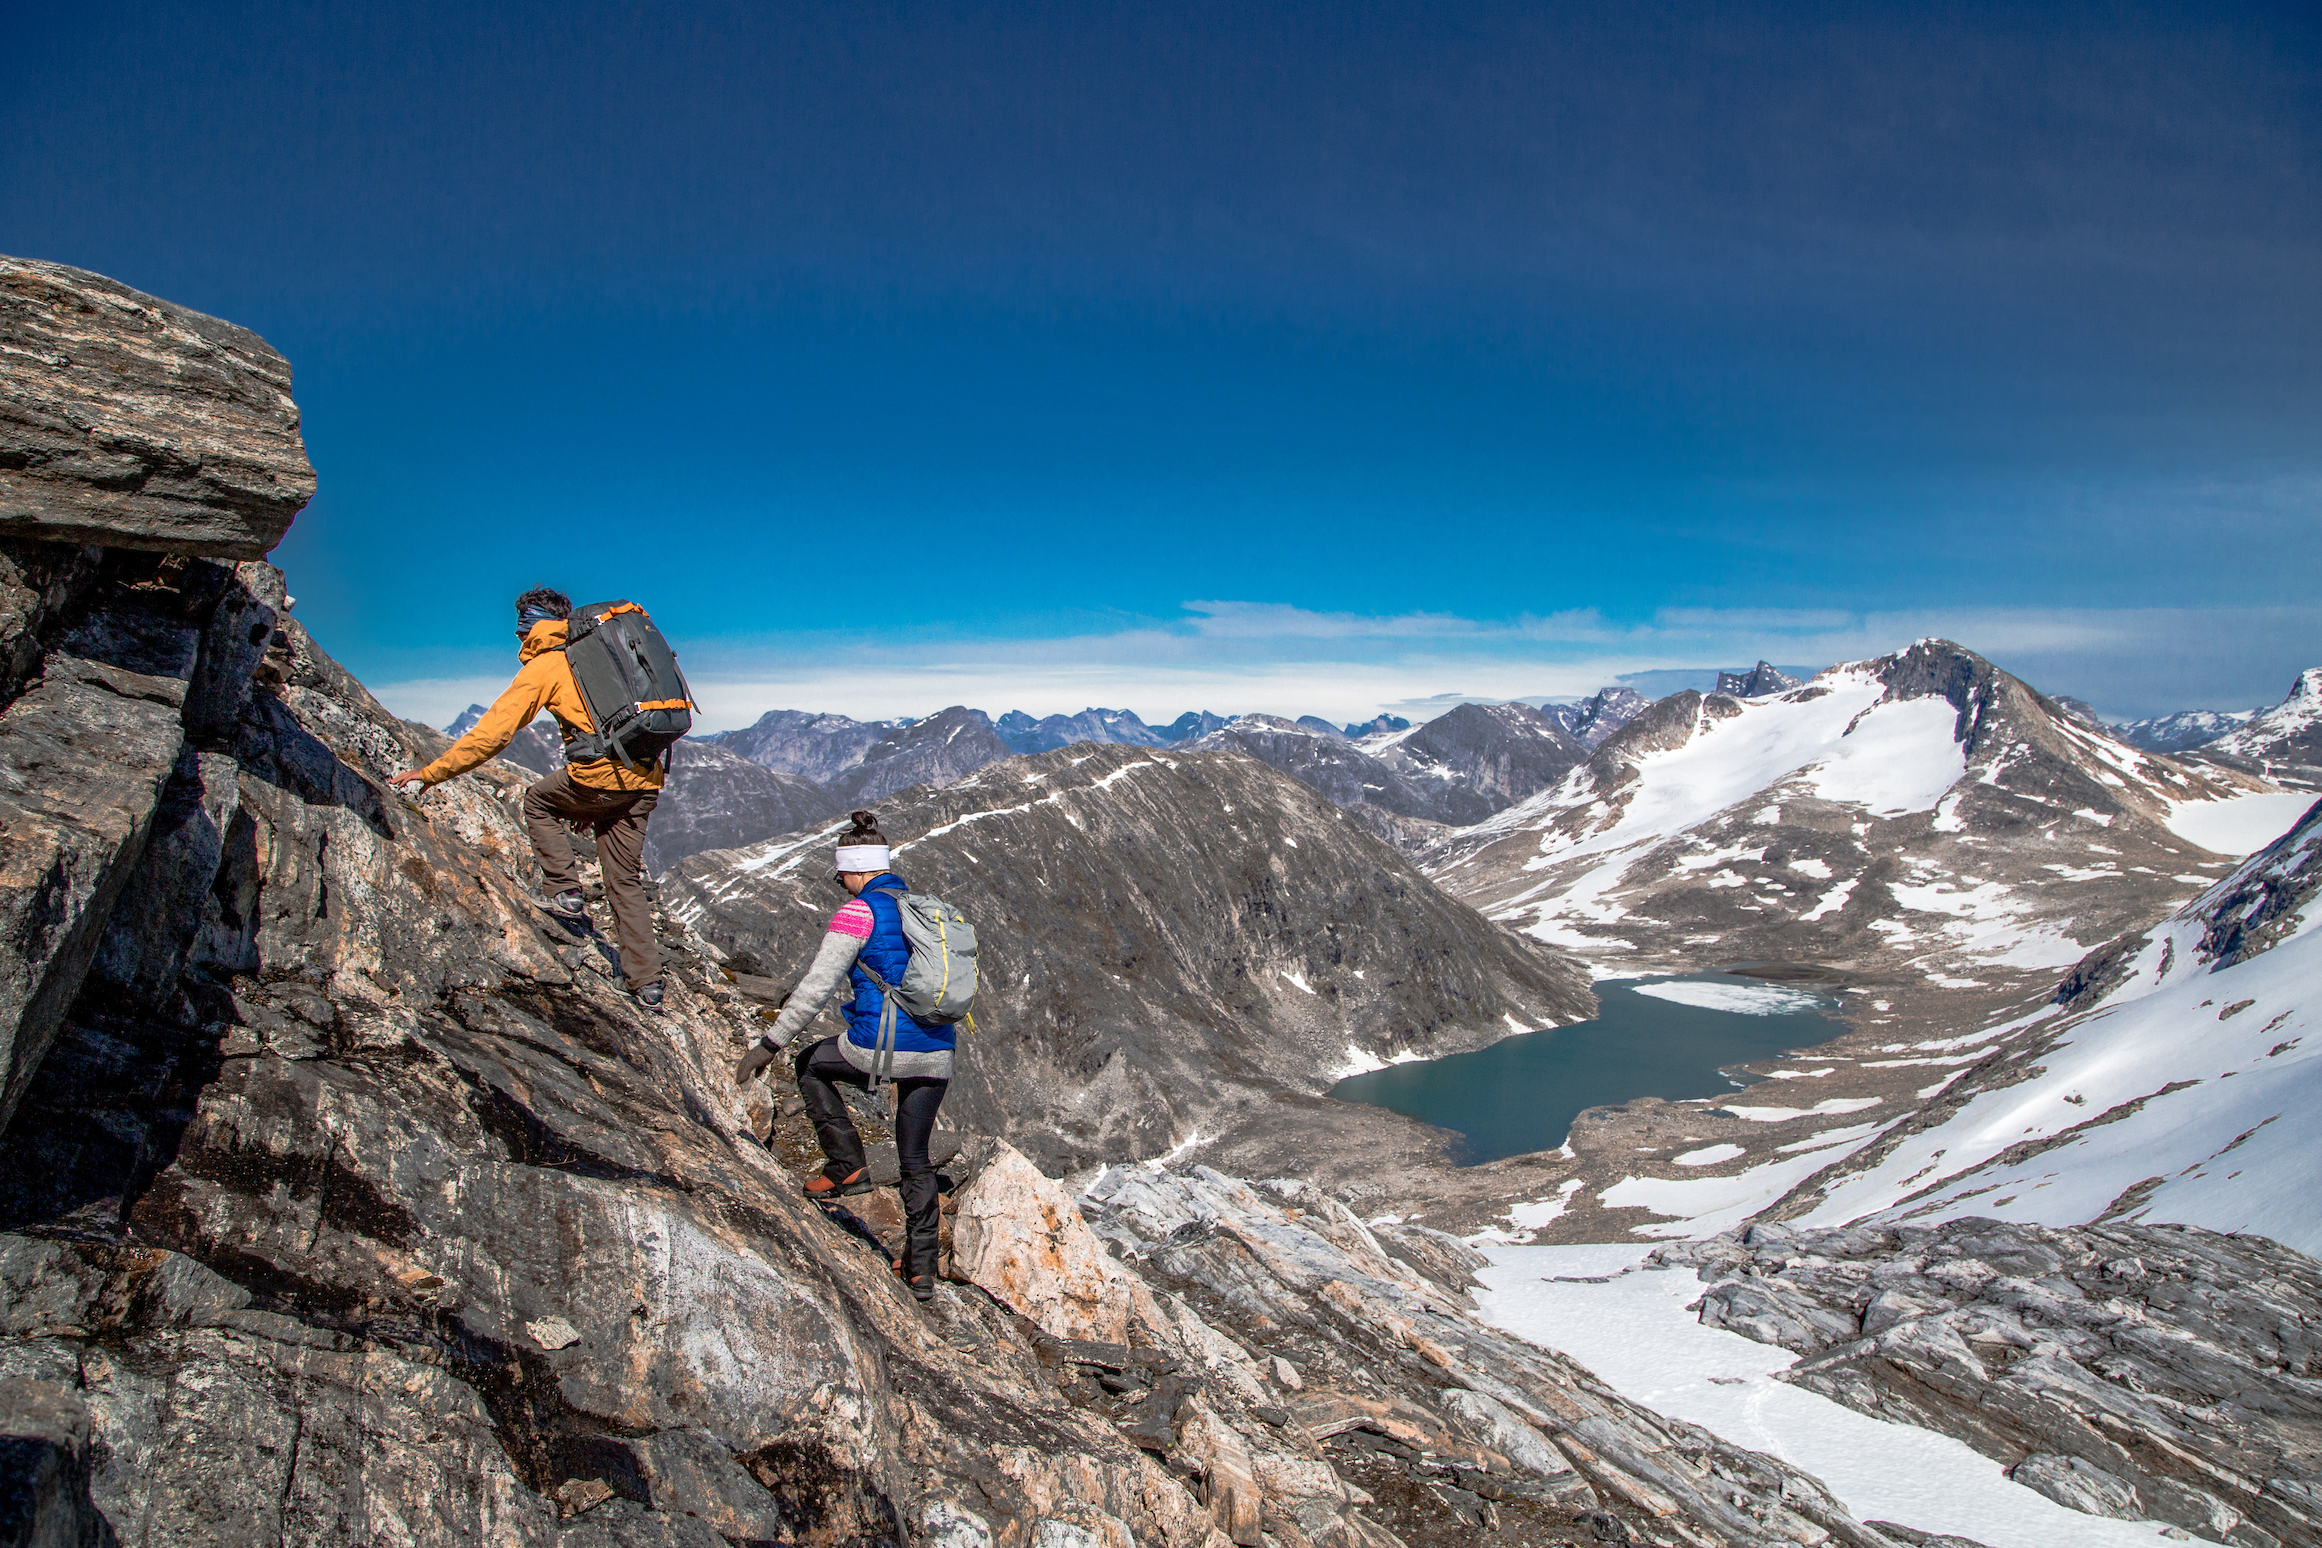 Two hikers nearing the summit of Kingittorsuaq mountain outside of Nuuk, the capital of Greenland